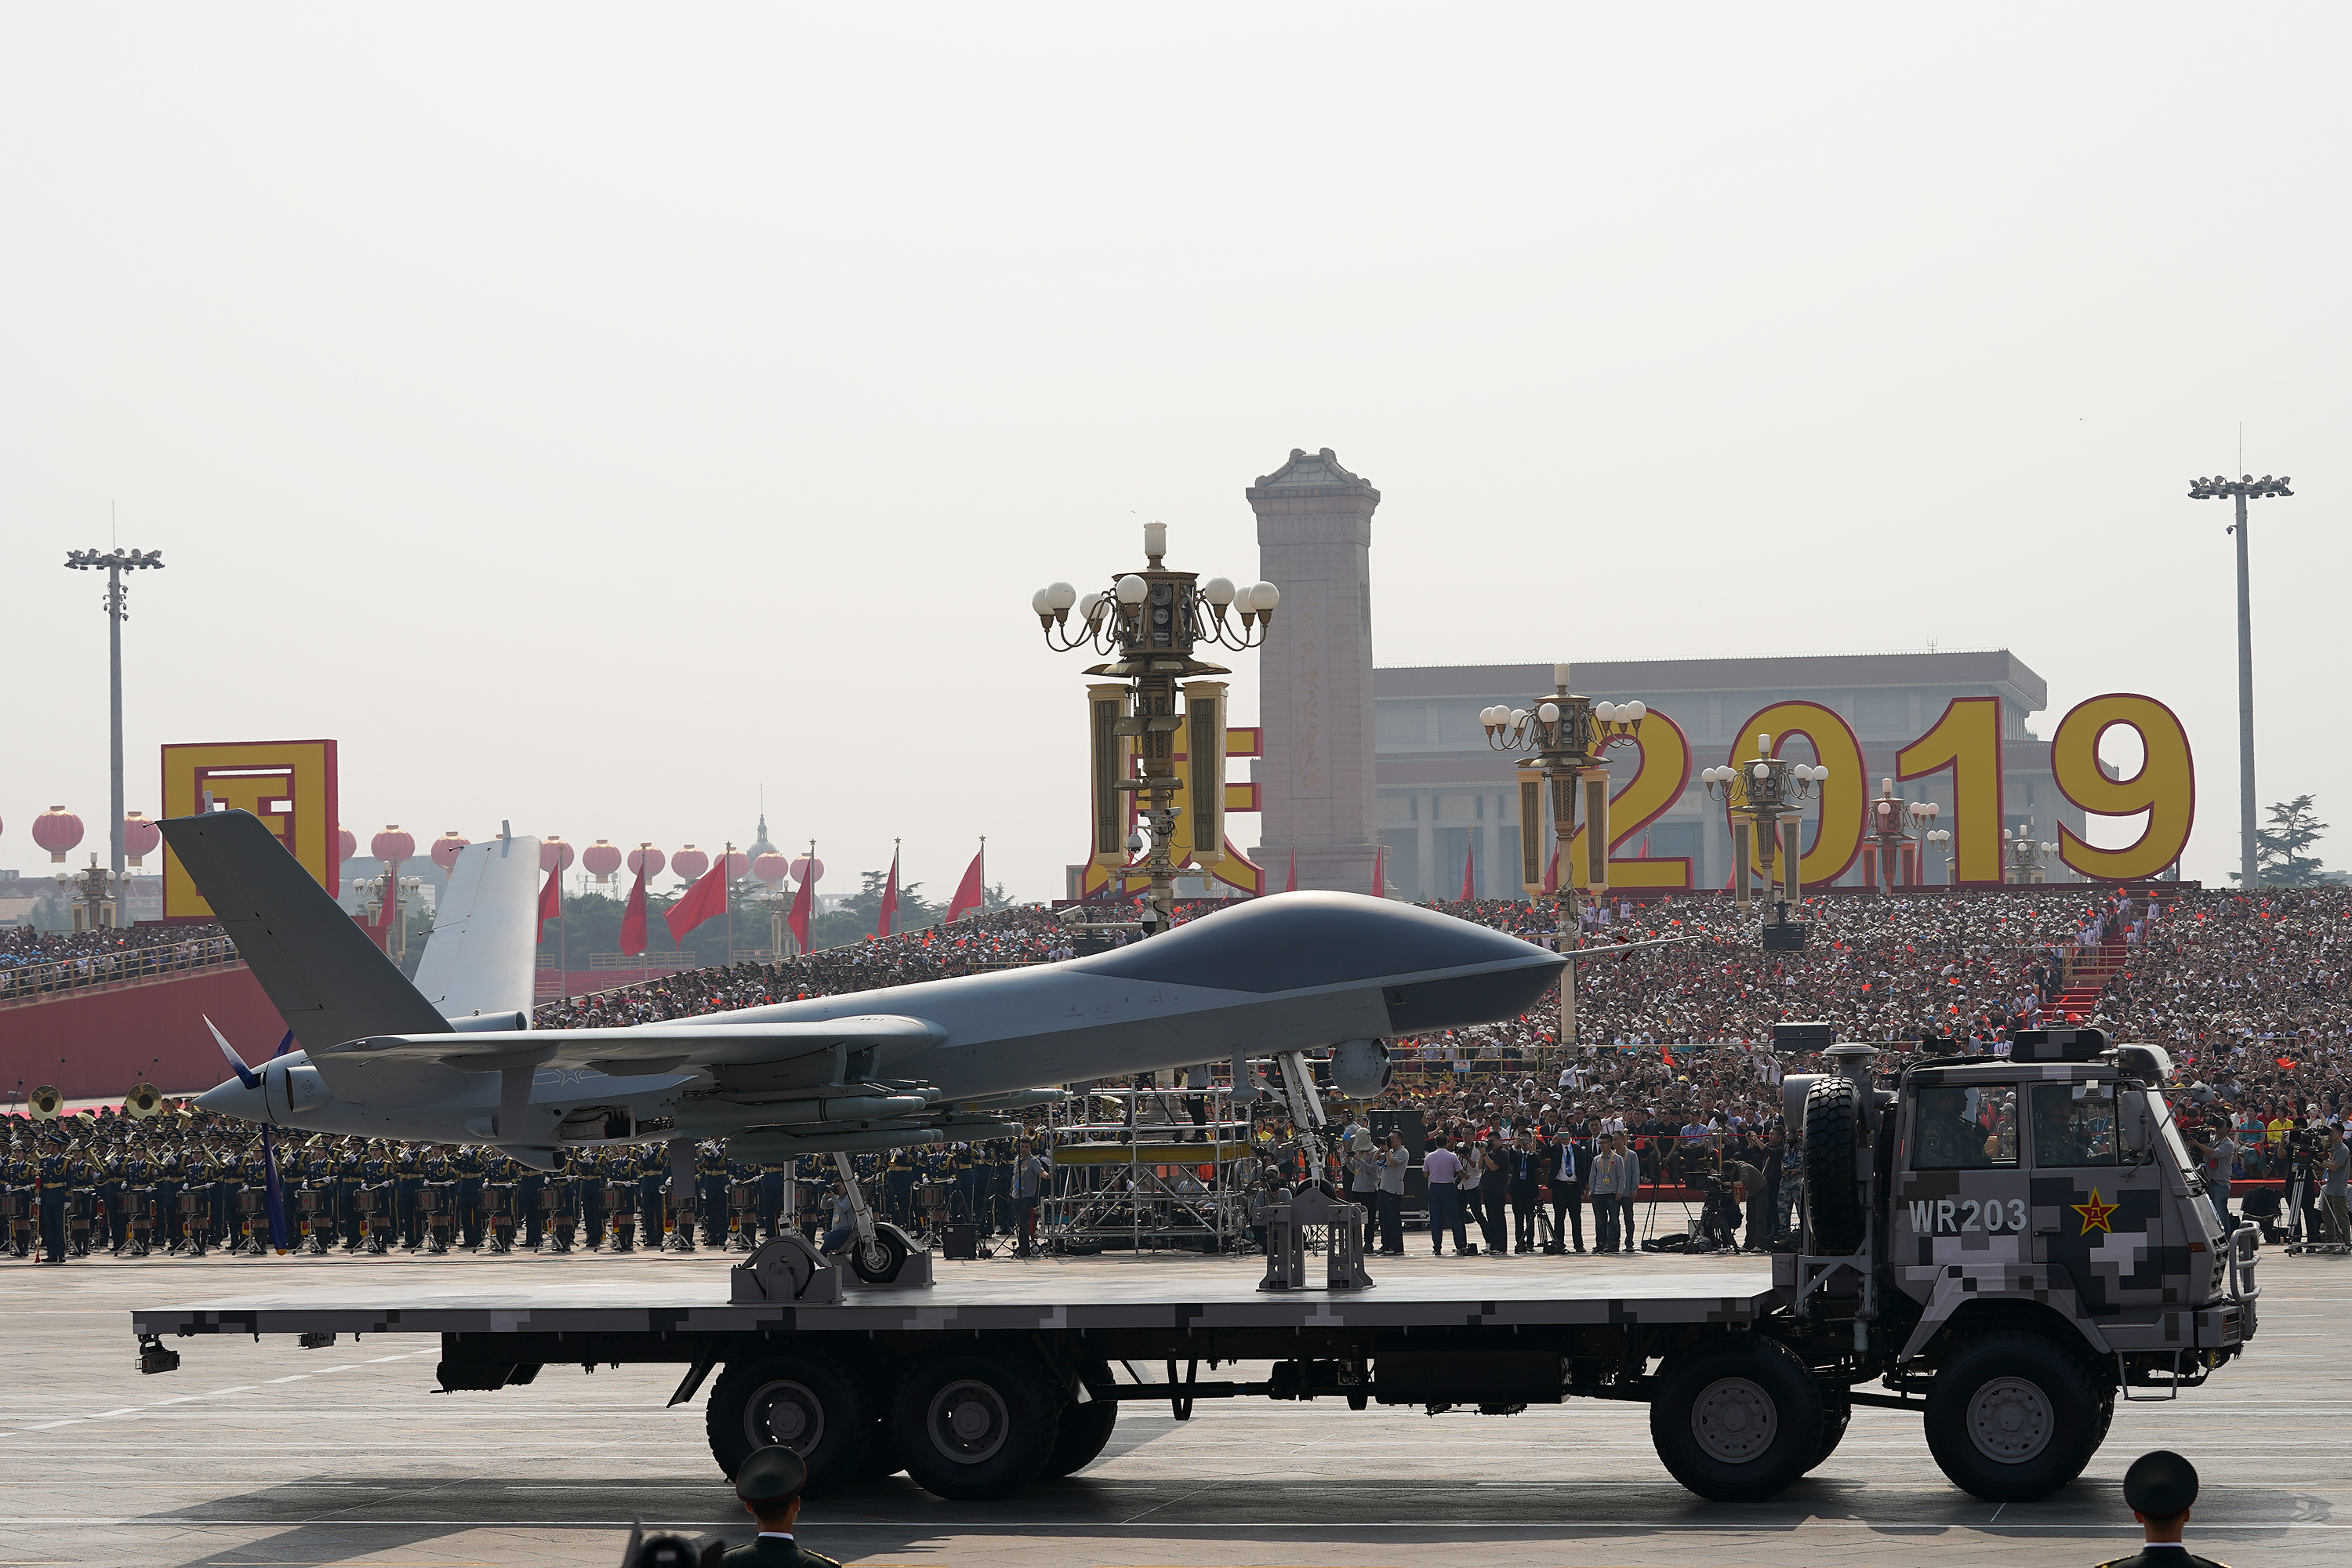 An UAV is shown during the military parade for the 70th anniversary of the establishment of the People's Republic of China. (Andrea Verdelli/Getty Images)